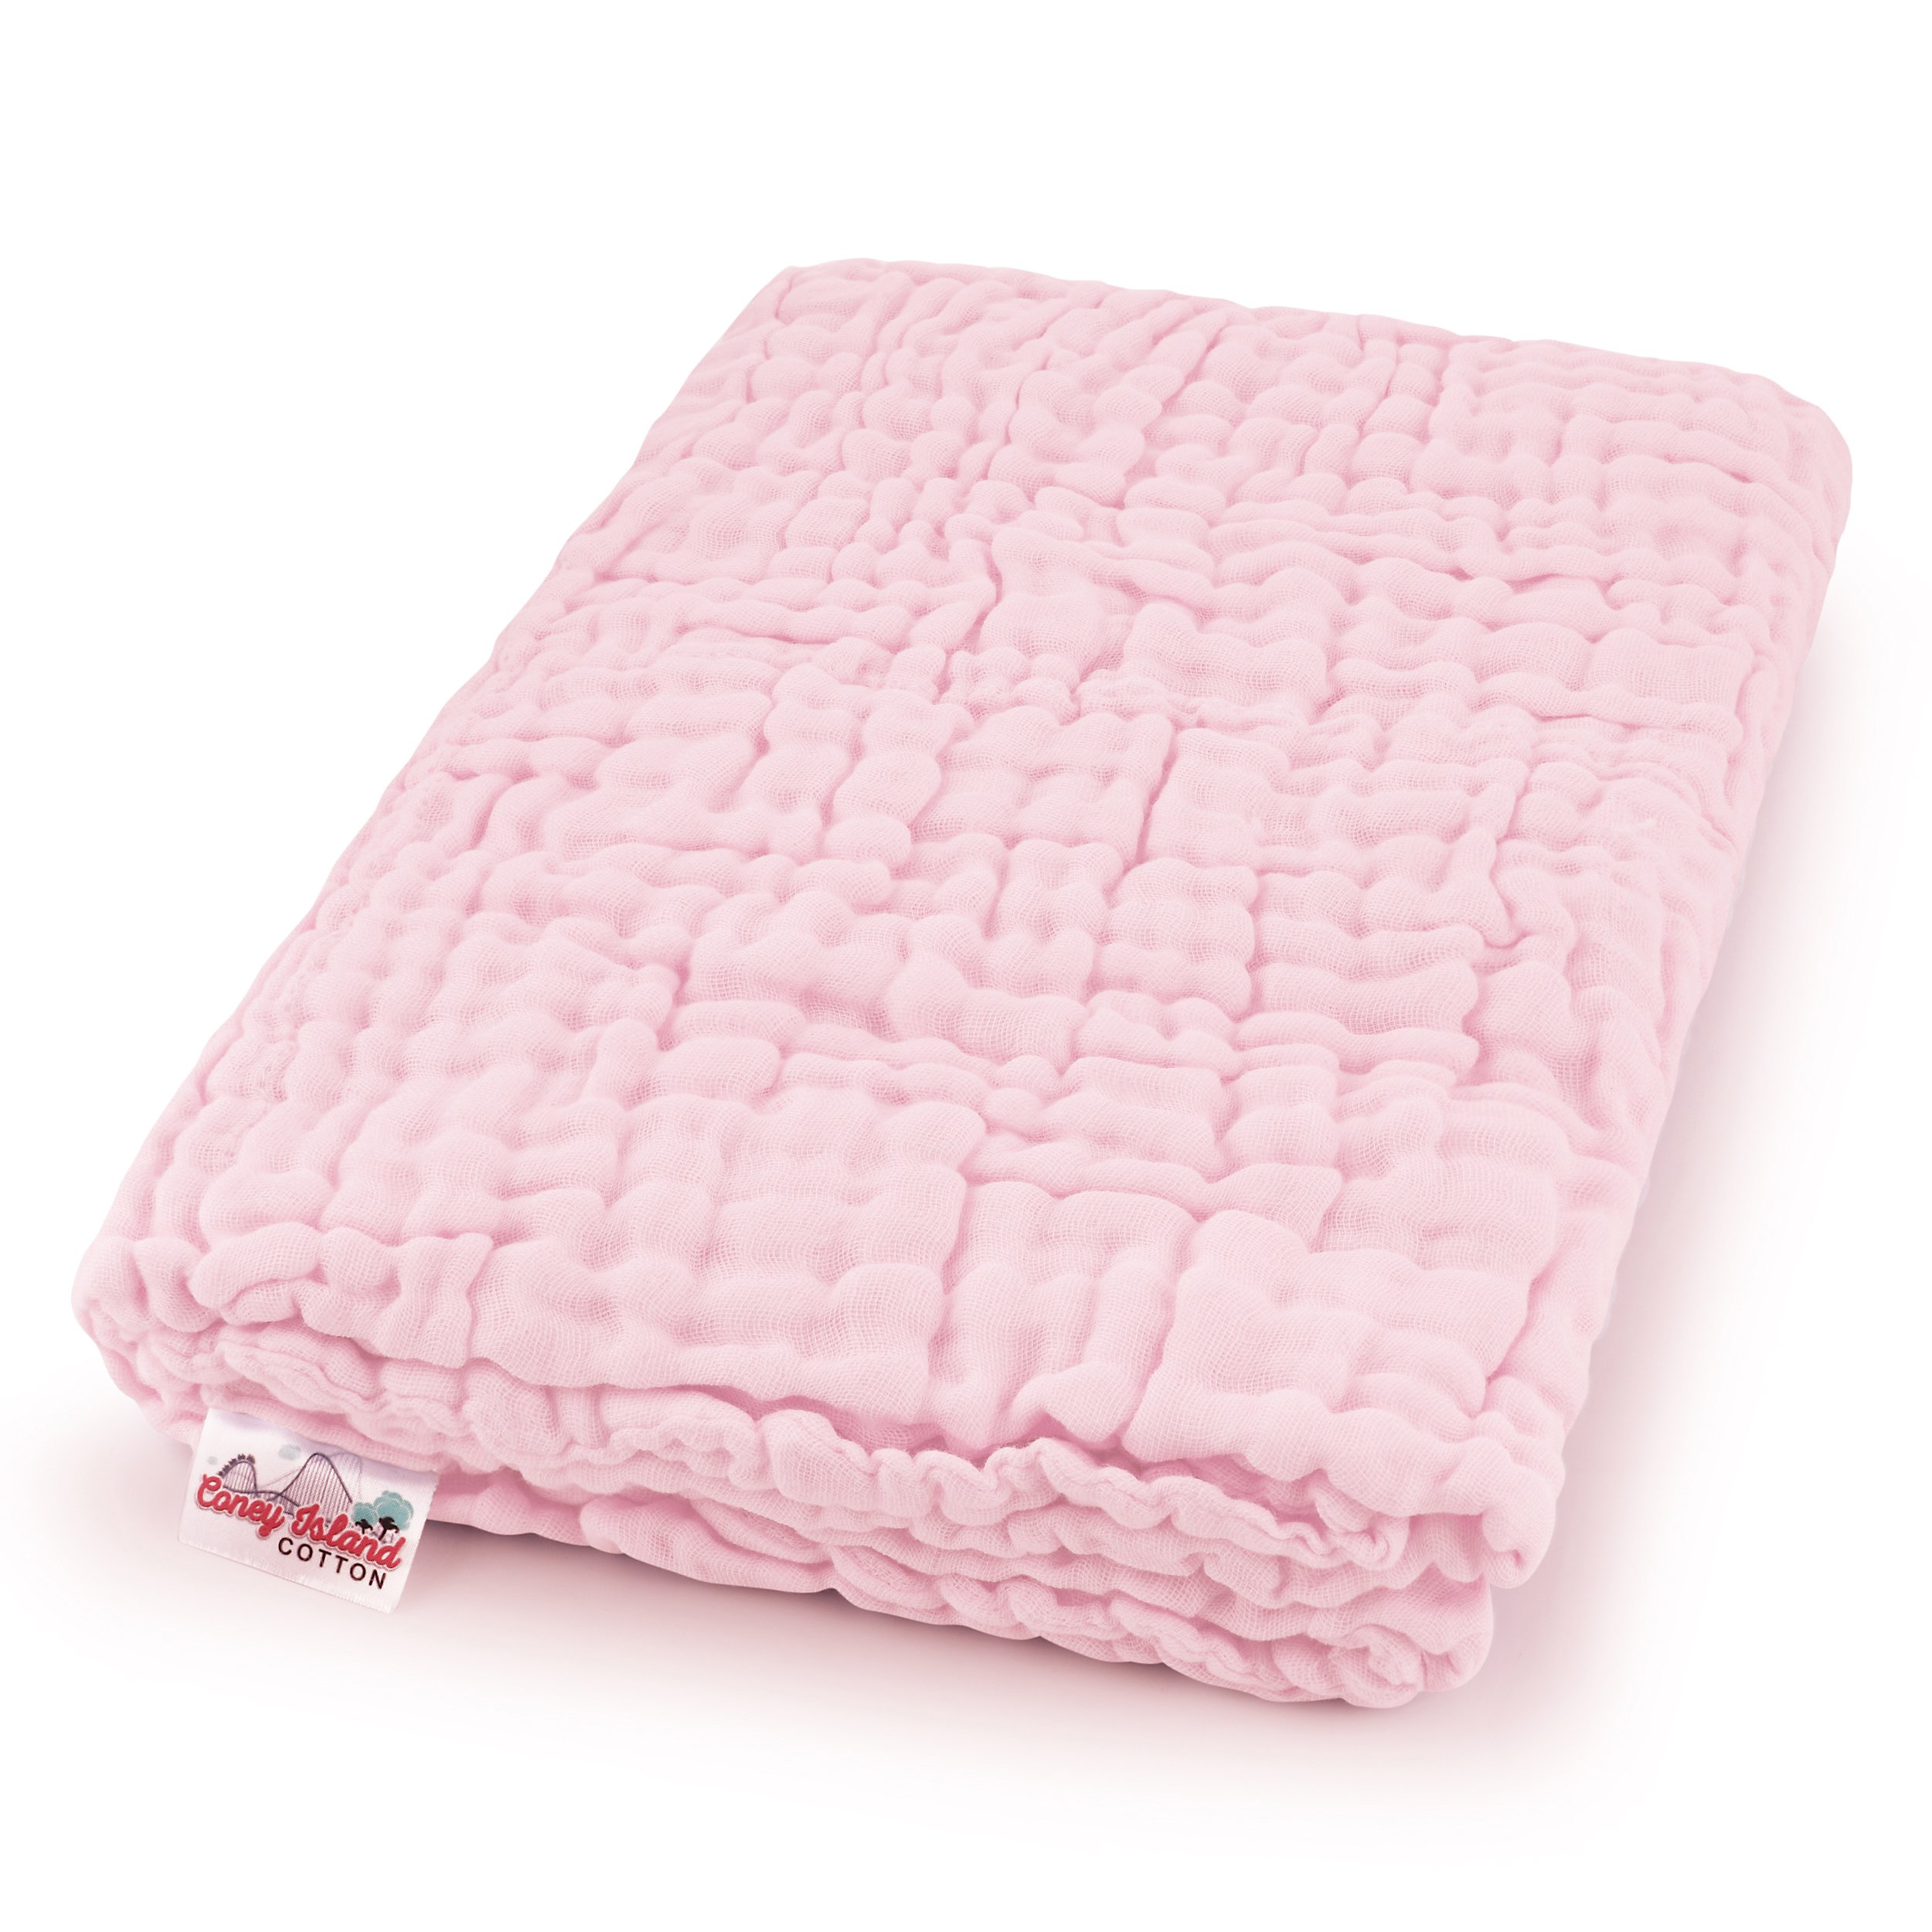 Coney Island Cotton Light Pink Muslin 6 Layer Multi Use Blanket Or Baby Towel Natural Antibacterial Large 45'' by 45 inch Fluffy, Warm & Soft Absorbent